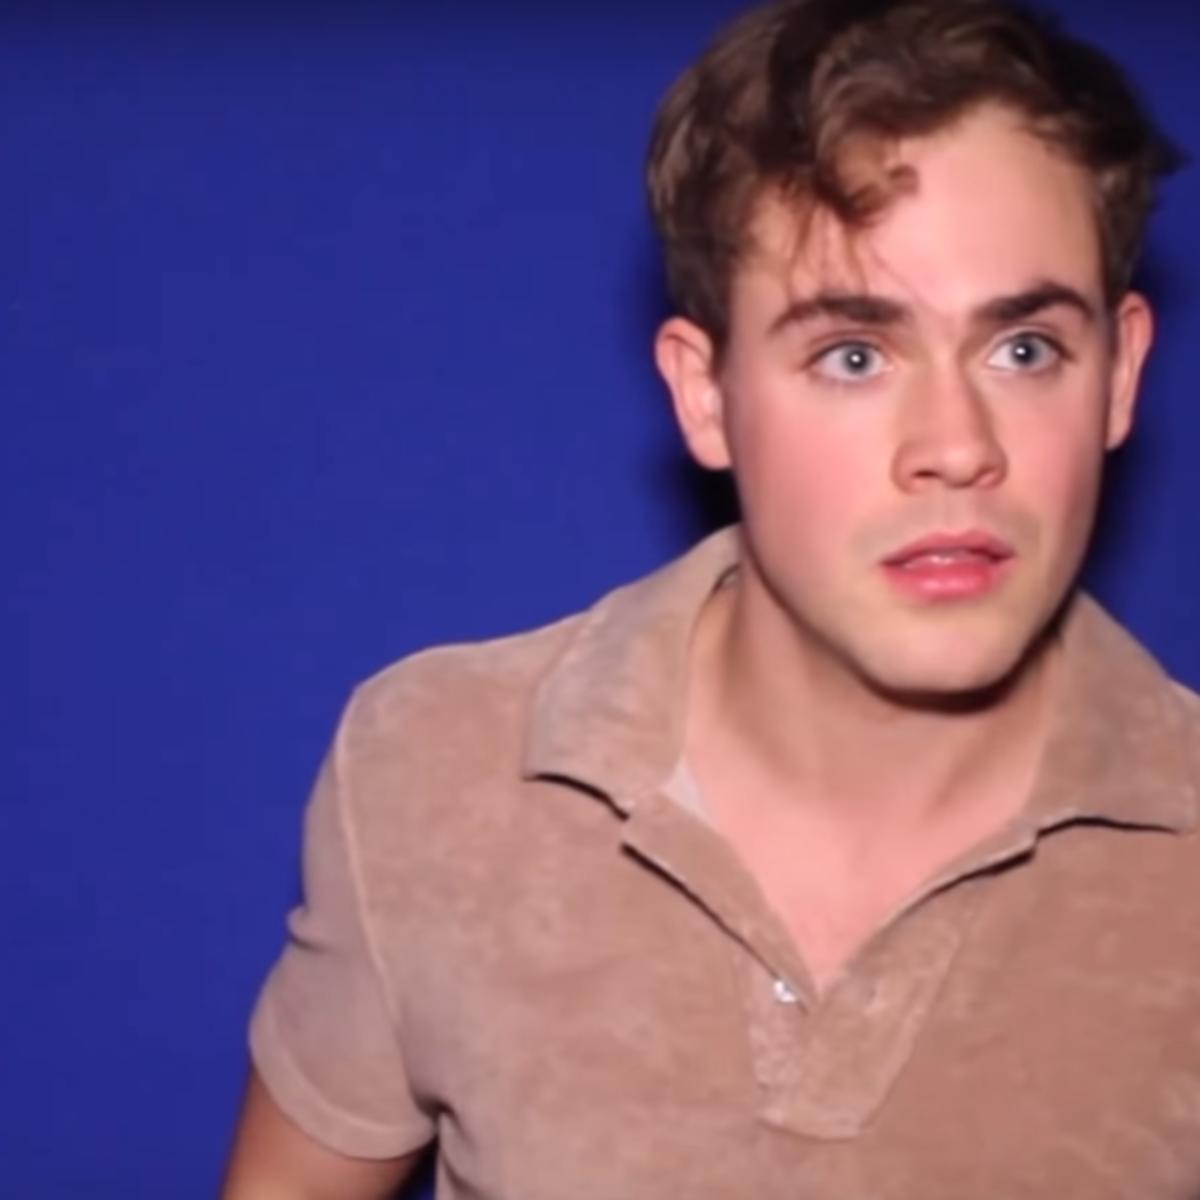 stranger-things2-dacre-montgomery-audition-tape-screengrab-syfywire.png